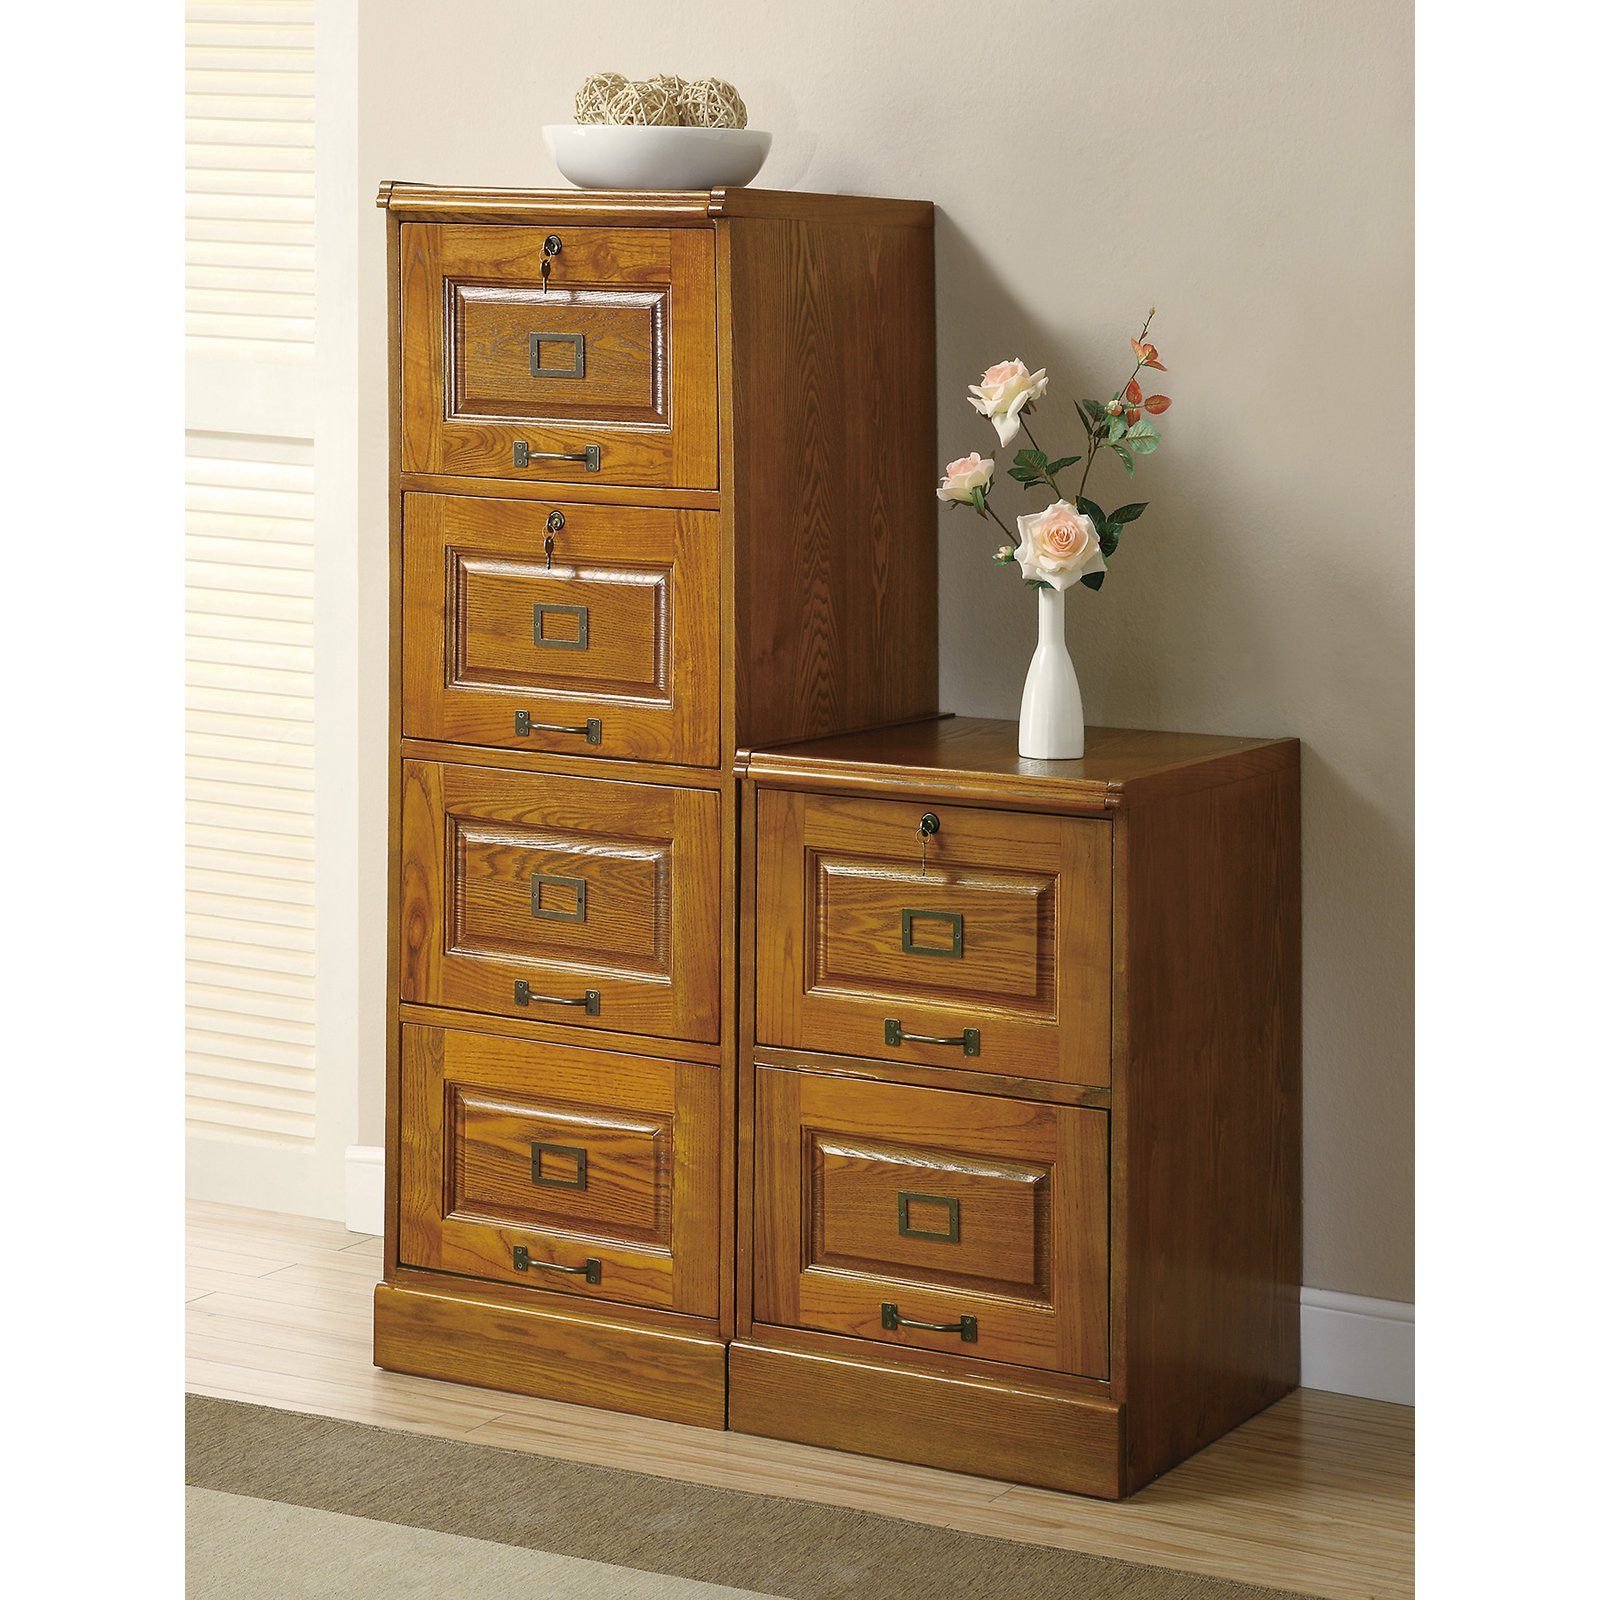 Coaster Furniture Warm Honey Locking 2 Drawer File Cabinet   Walmart.com